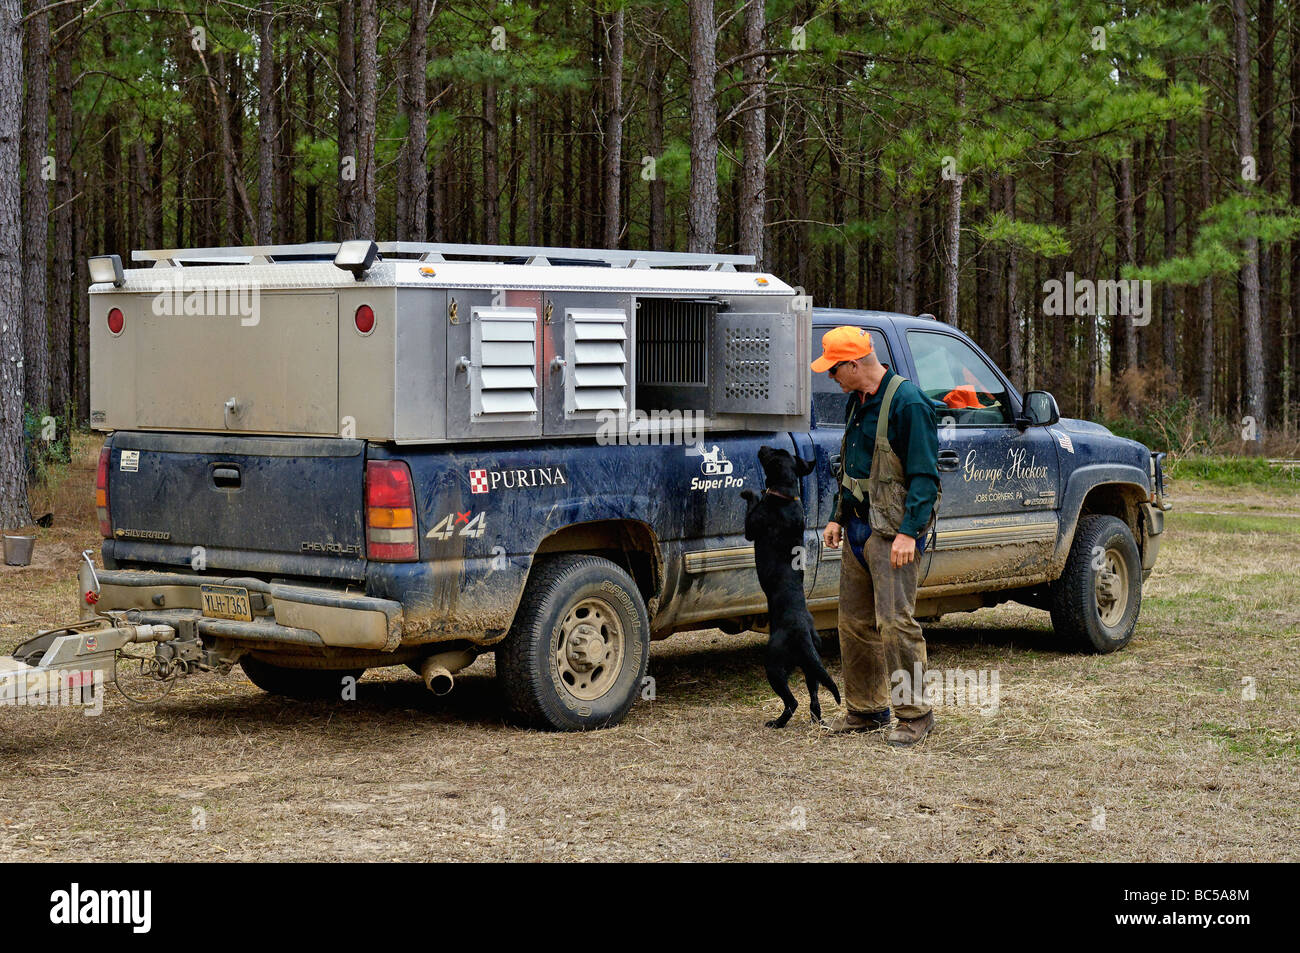 Dog Trainer George Hickox with Labrador Retriever at Hunting Rig in the Piney Woods of Georgia - Stock Image